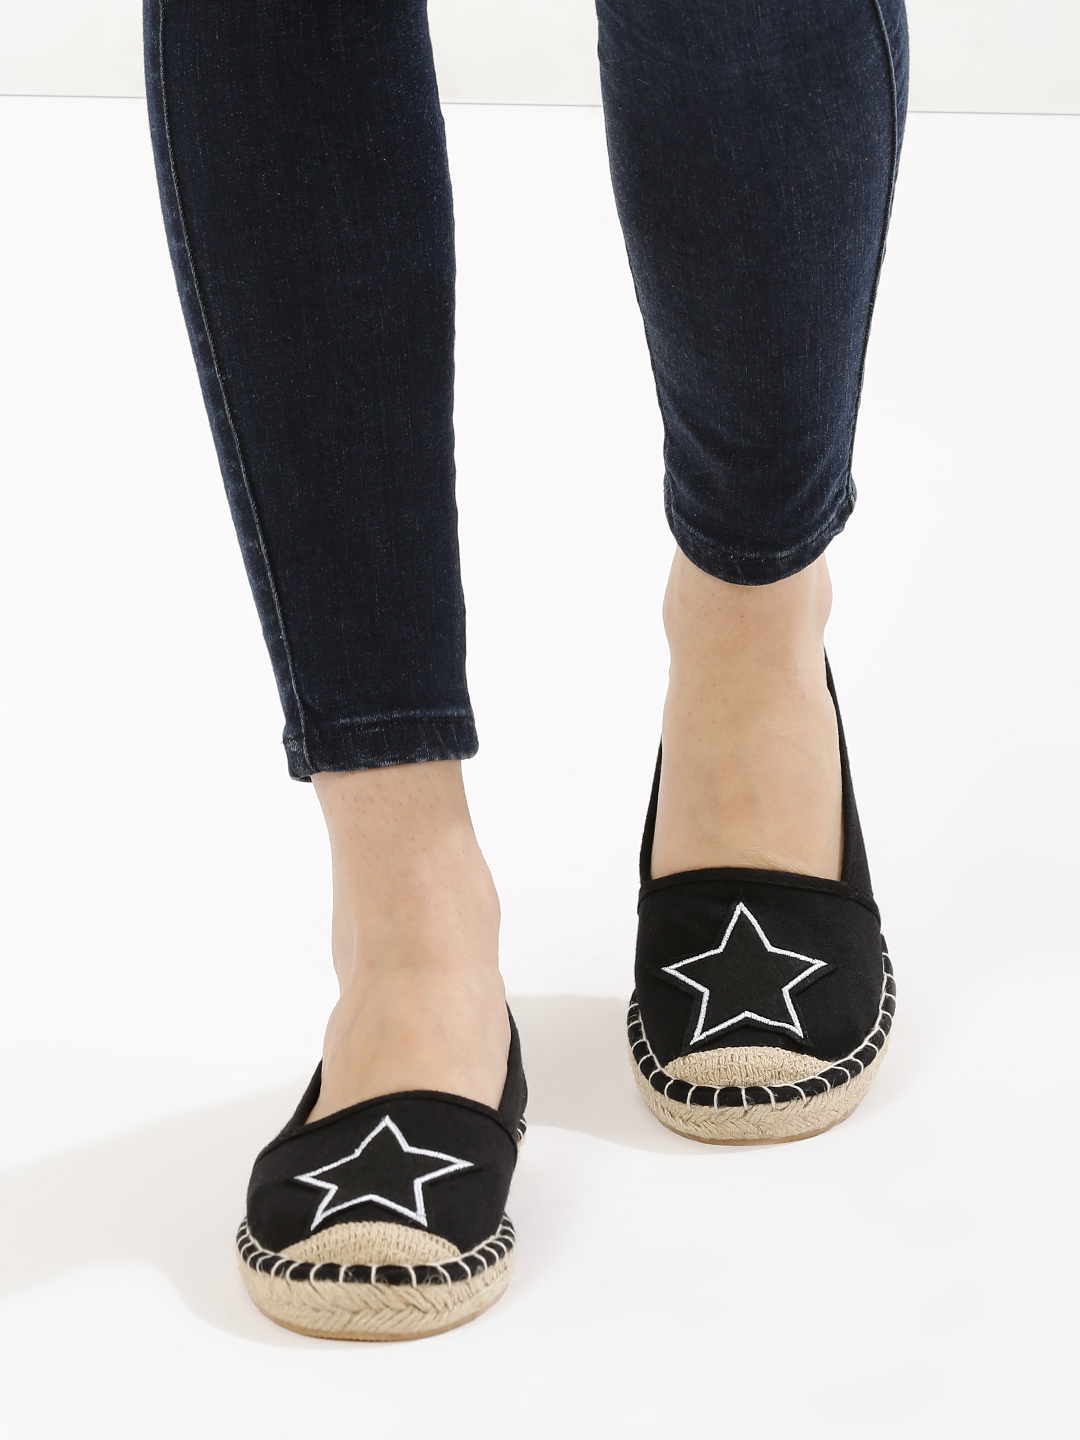 New Look Black Star Embroidered Espadrilles Shoes 1